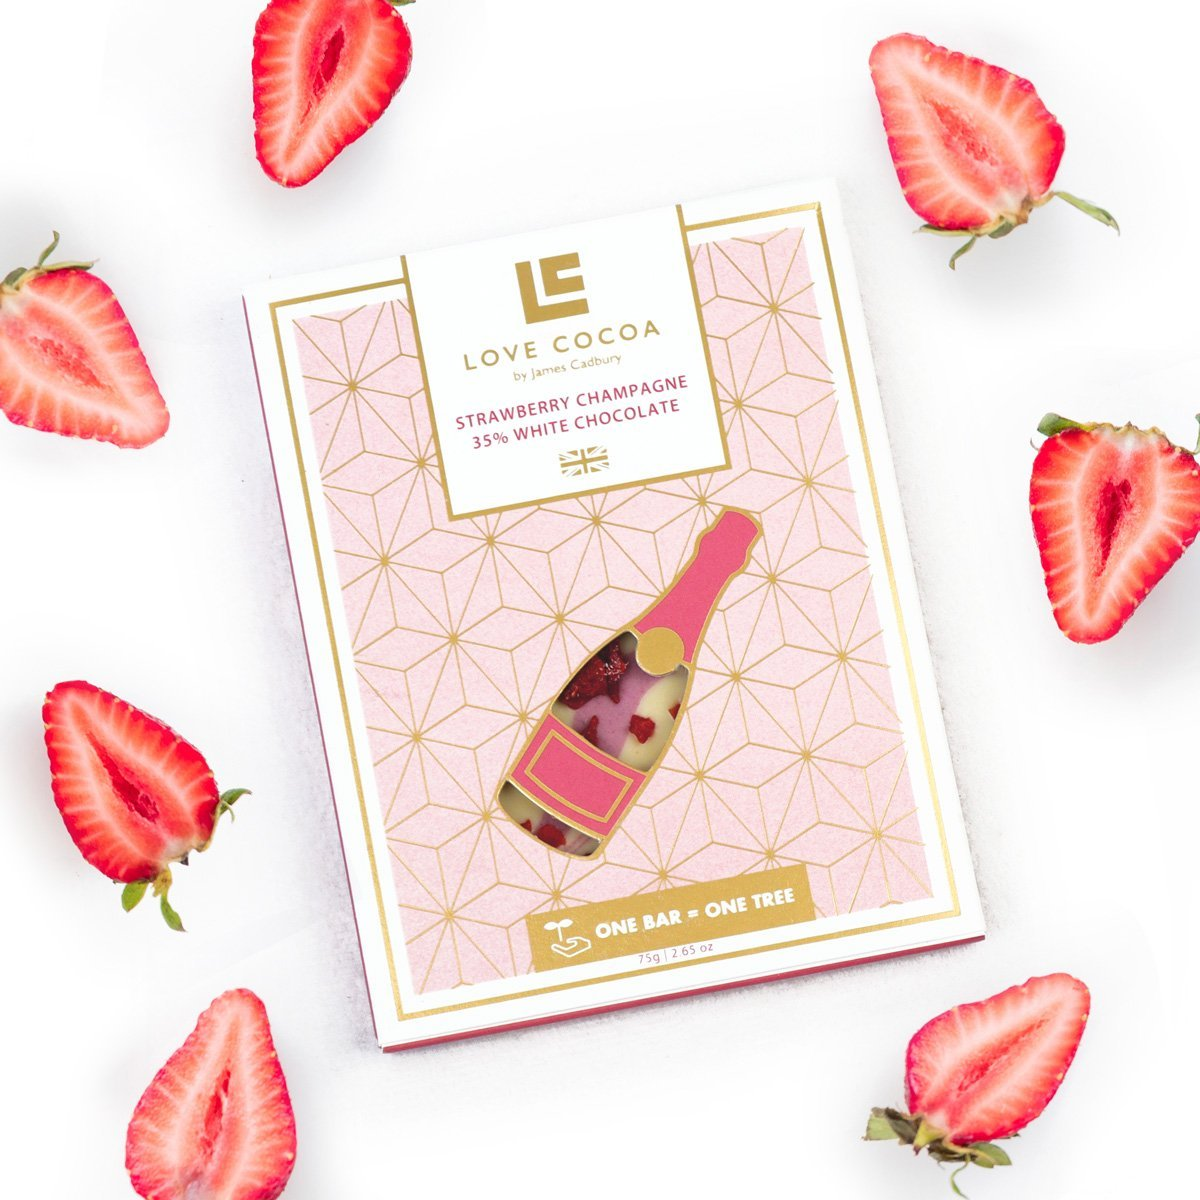 Strawberry Champagne 35% Witte Chocolade